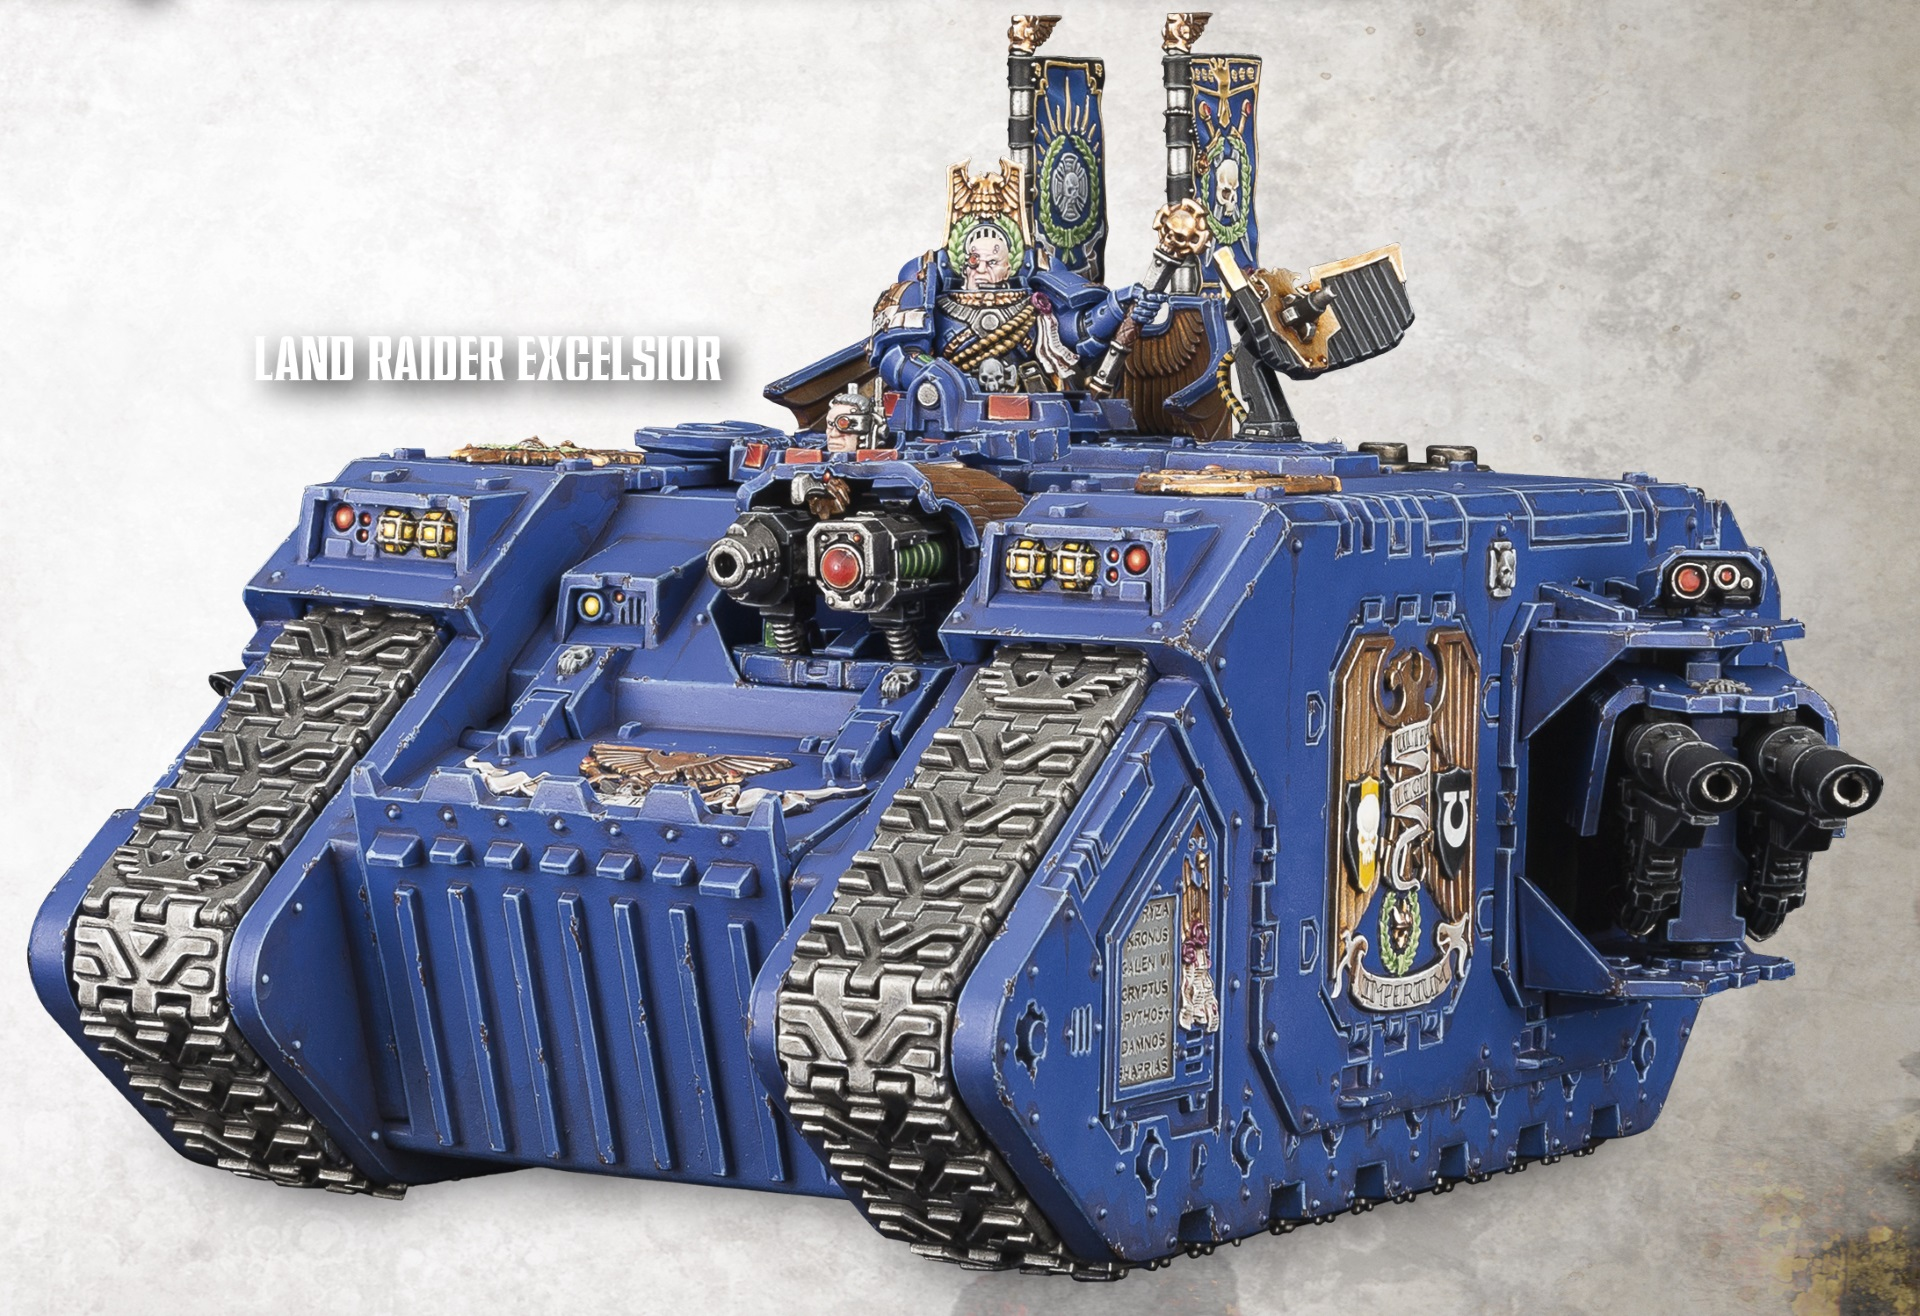 Space Marine Land Raider Excelsior Command Tank